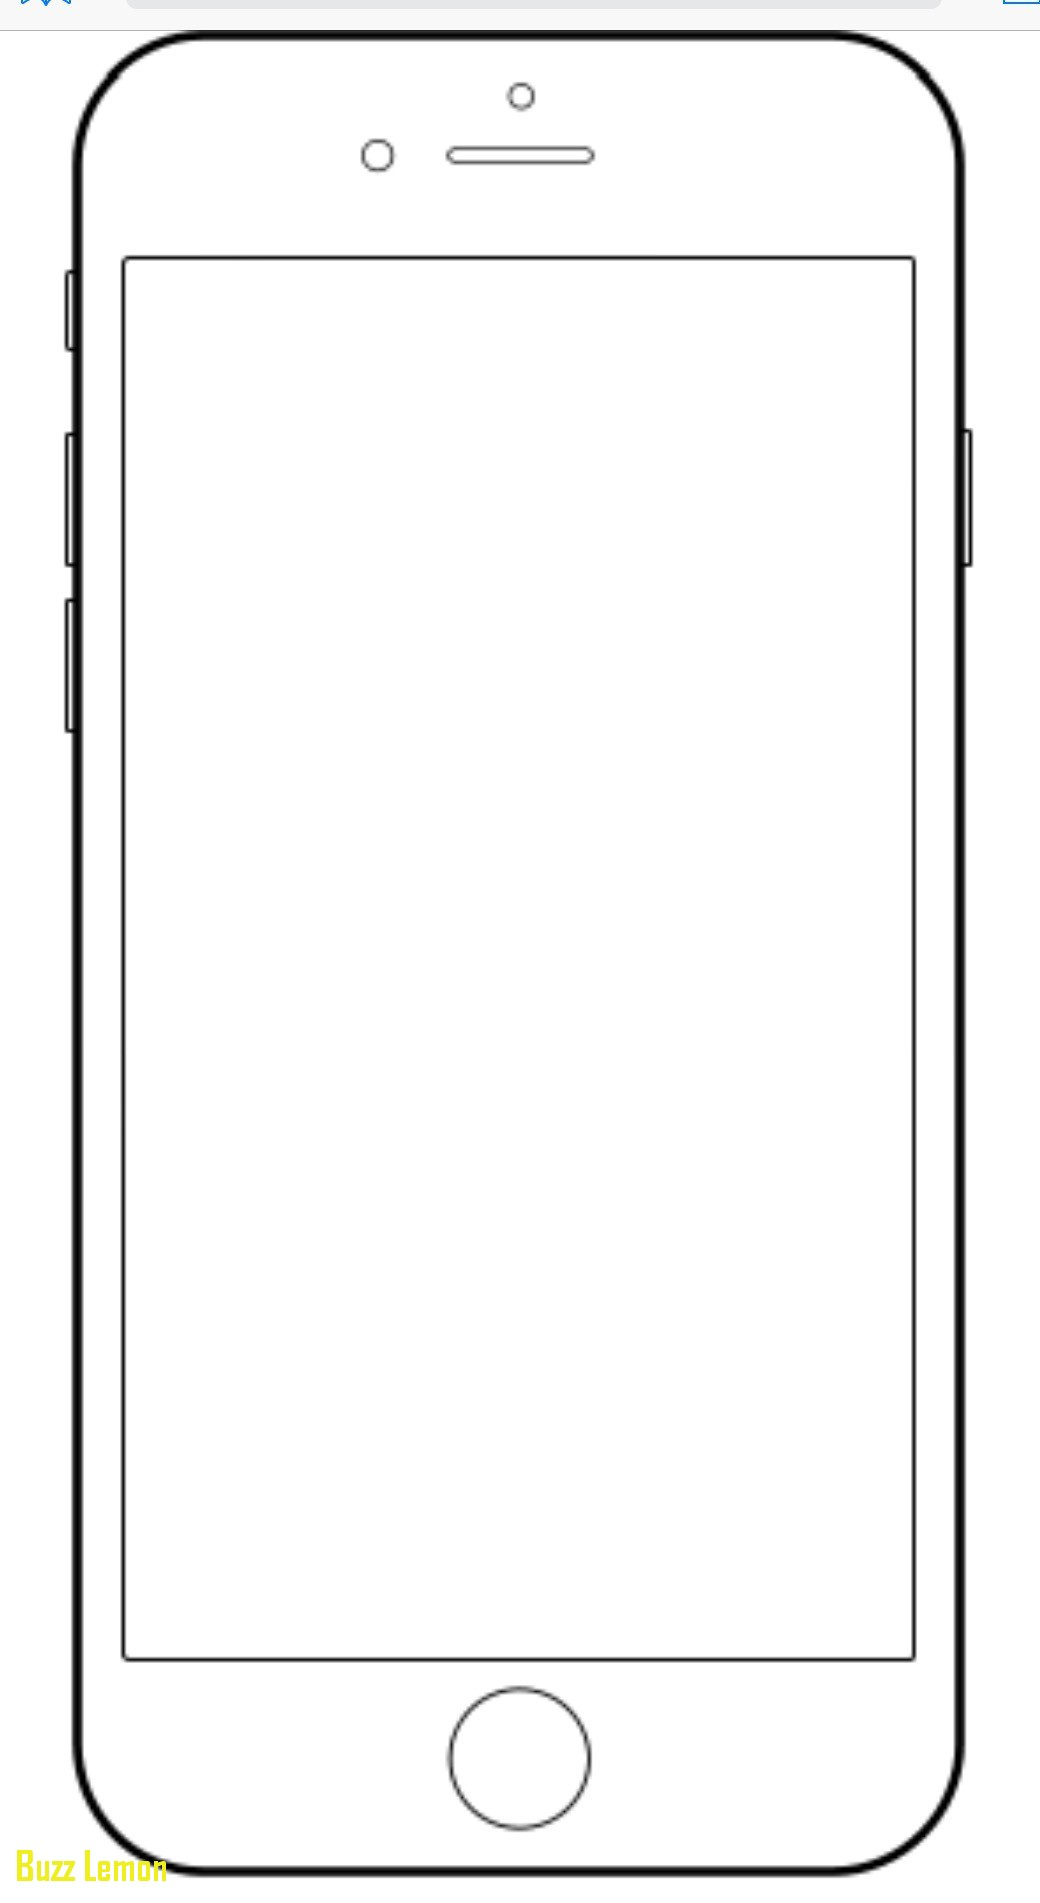 Luxury iPhone 6 Coloring Page Download Of Luxury iPhone 6 Coloring Page Download